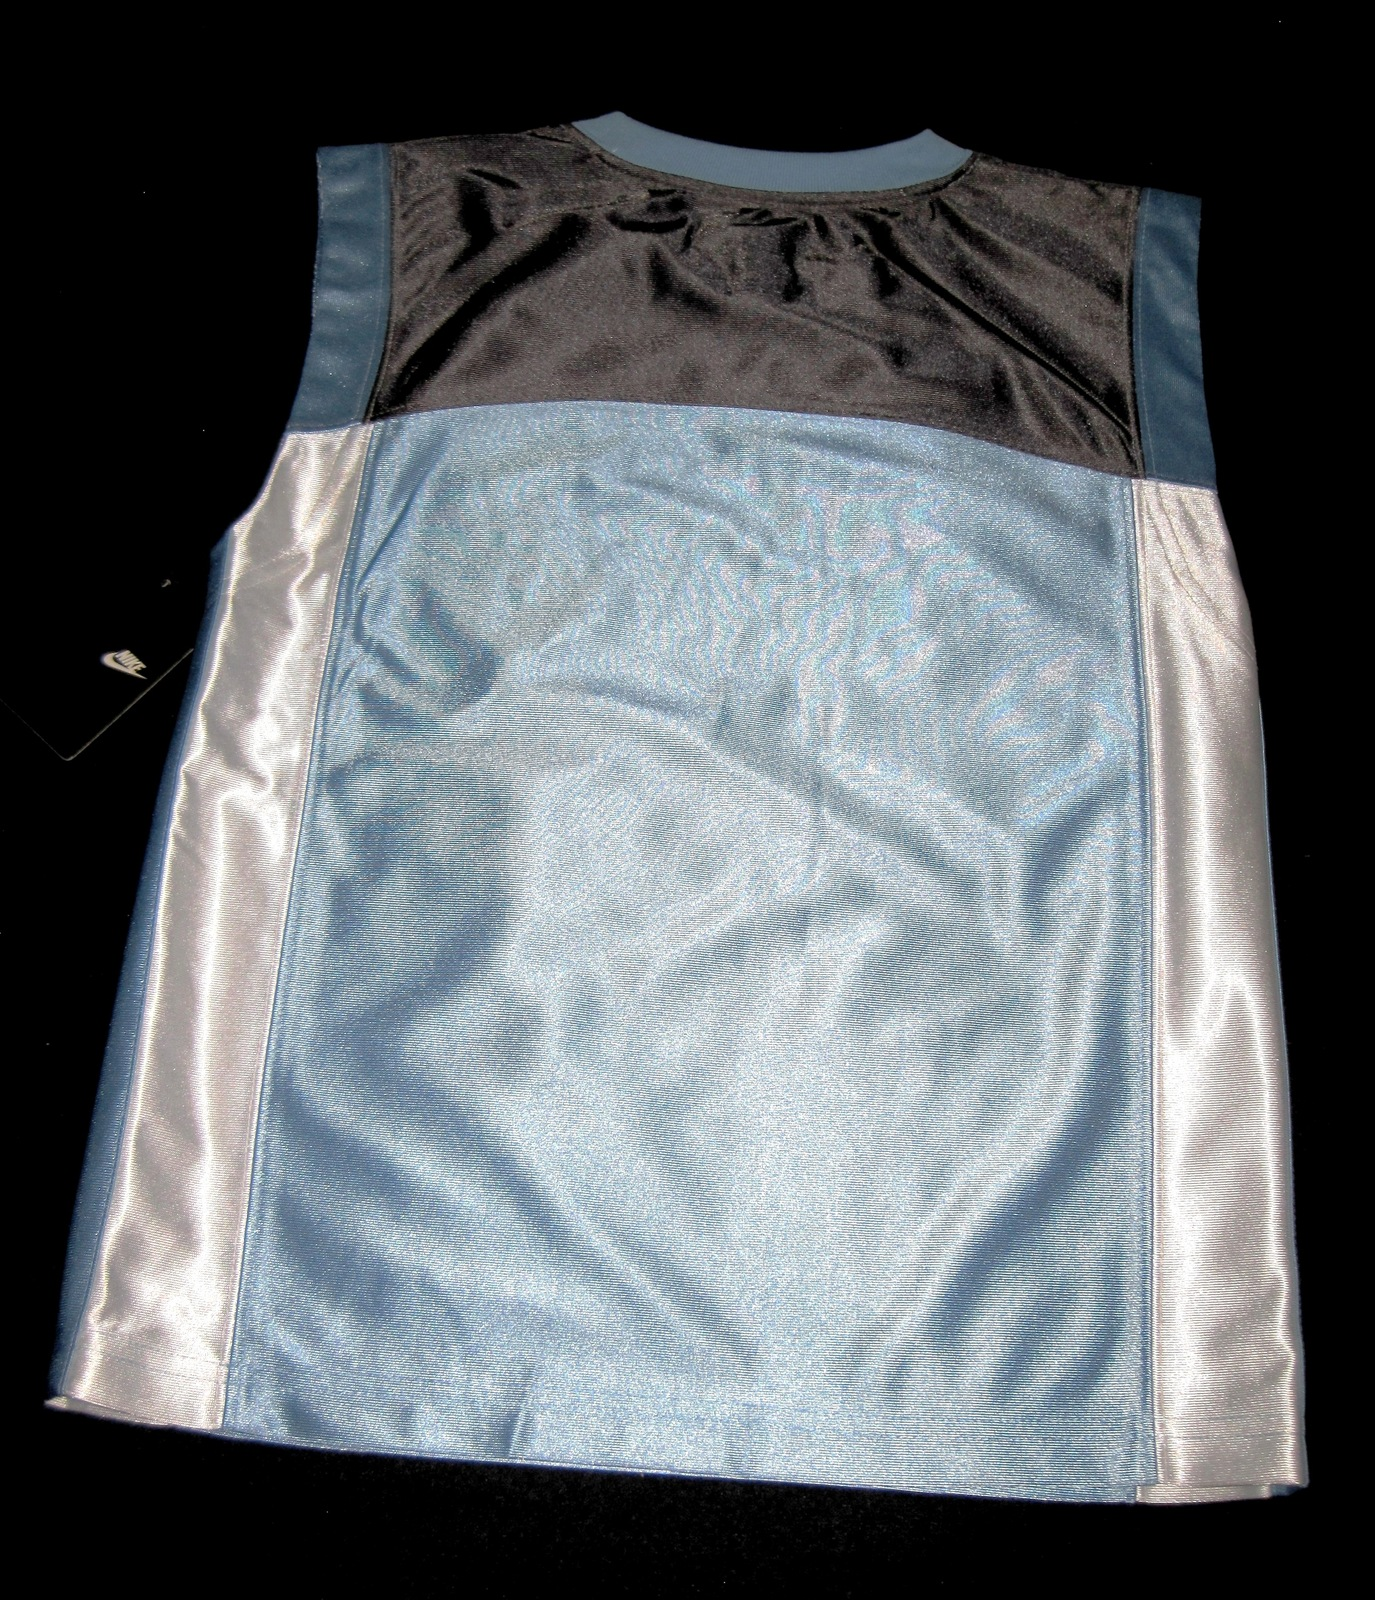 BOYS 7 - Nike - Light Blue-Gray-White BASKETBALL SPORTS JERSEY image 10